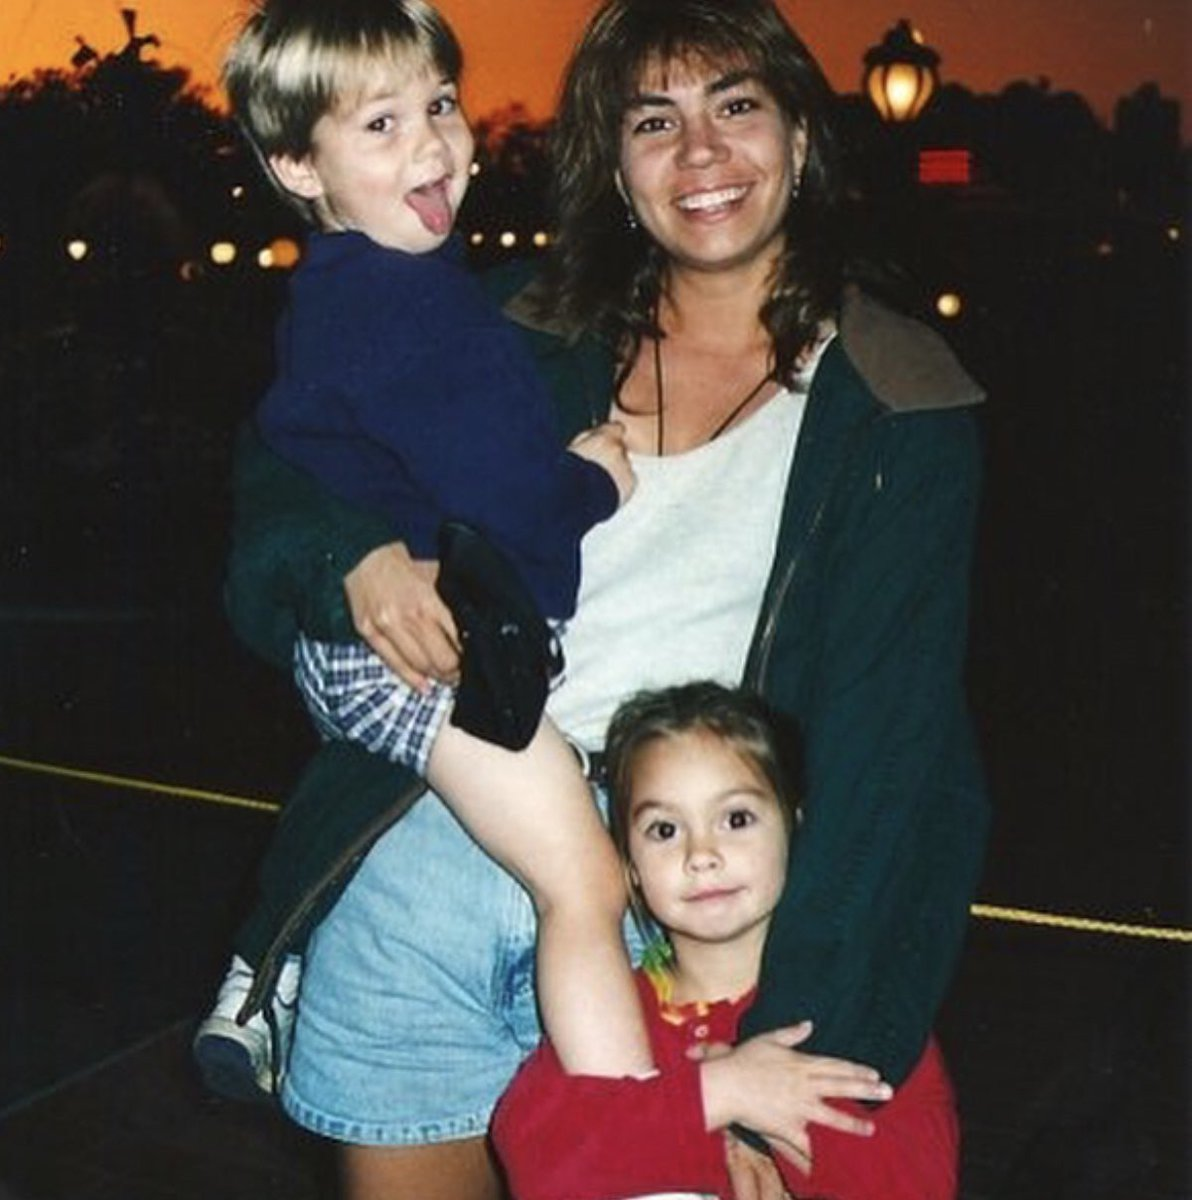 Dylan Obrien Press On Twitter A Few Of The Baby Dylan Photos Lisa